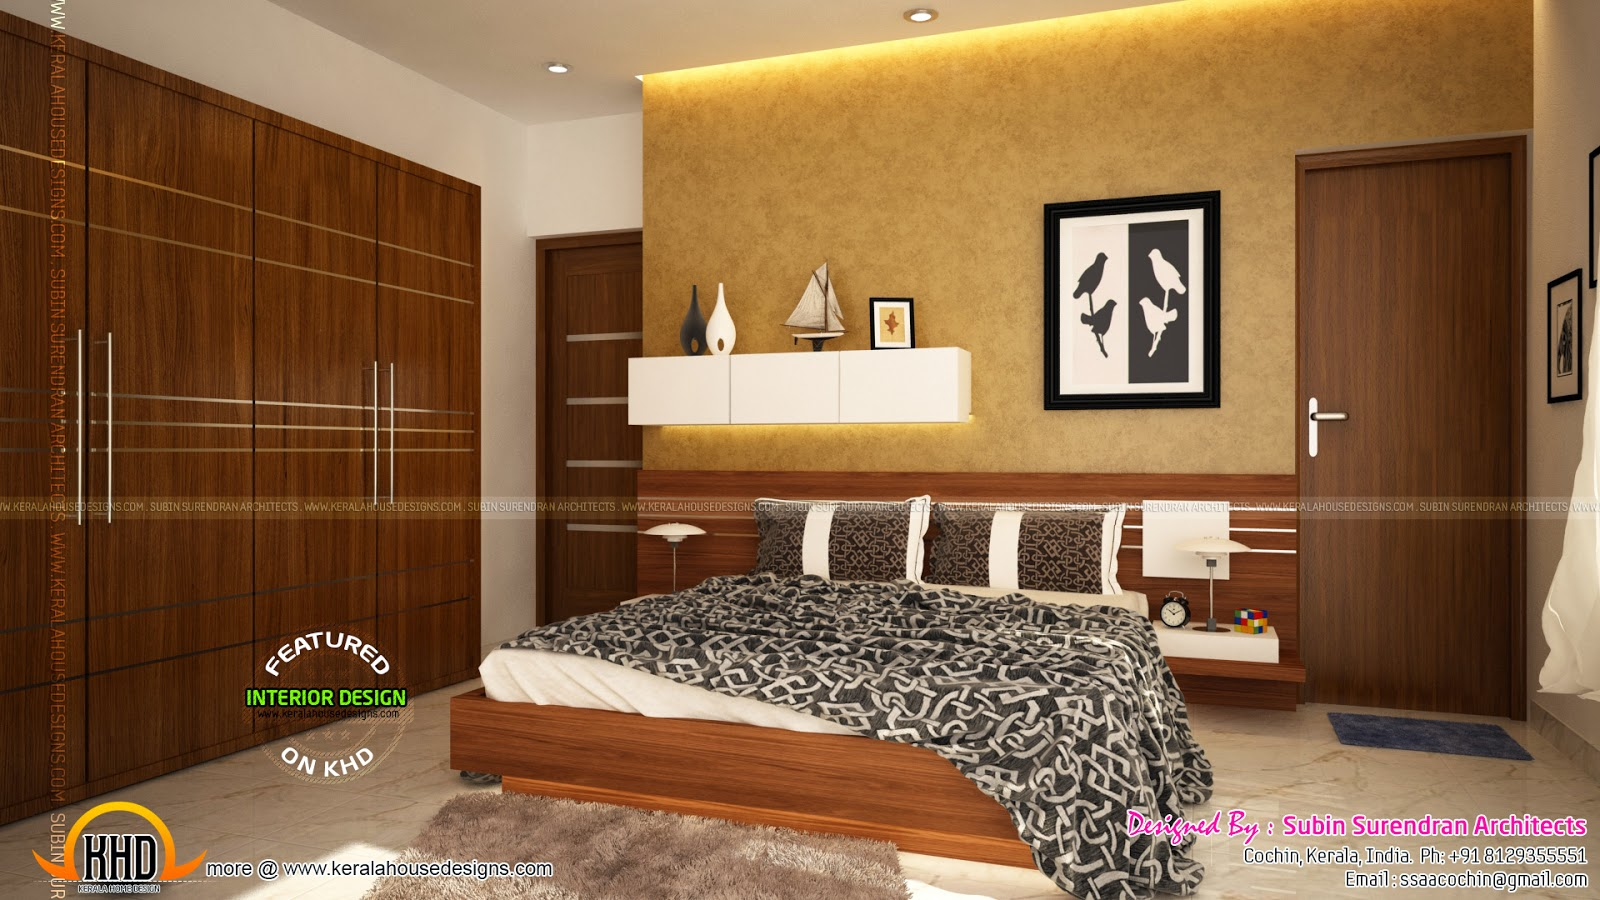 Interior design cochin kerala home design and floor plans - Interior design for bedroom in india ...